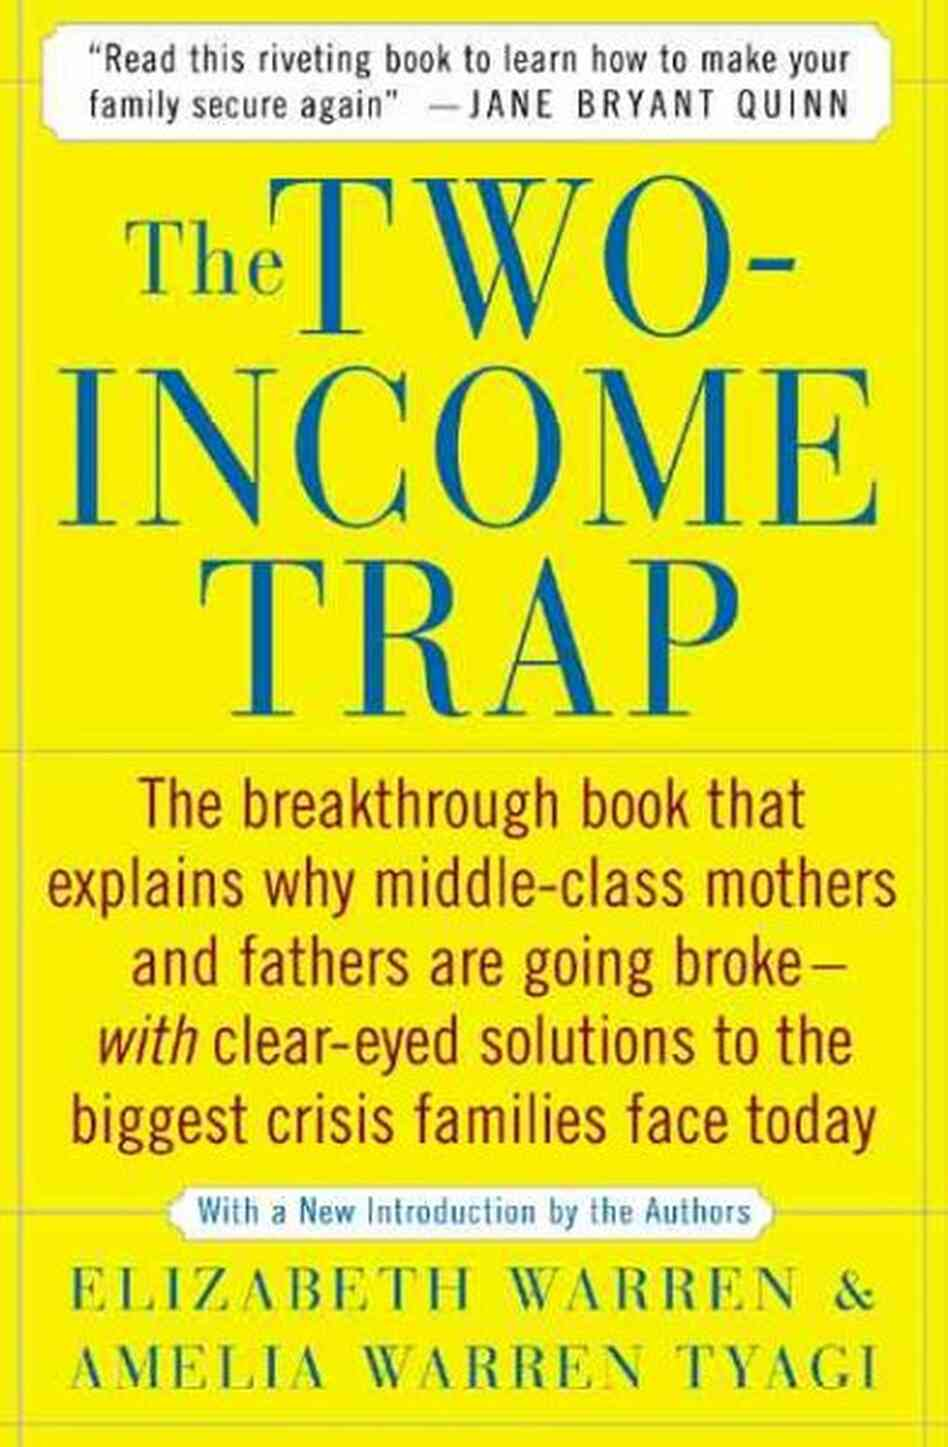 The Two-Income Trap